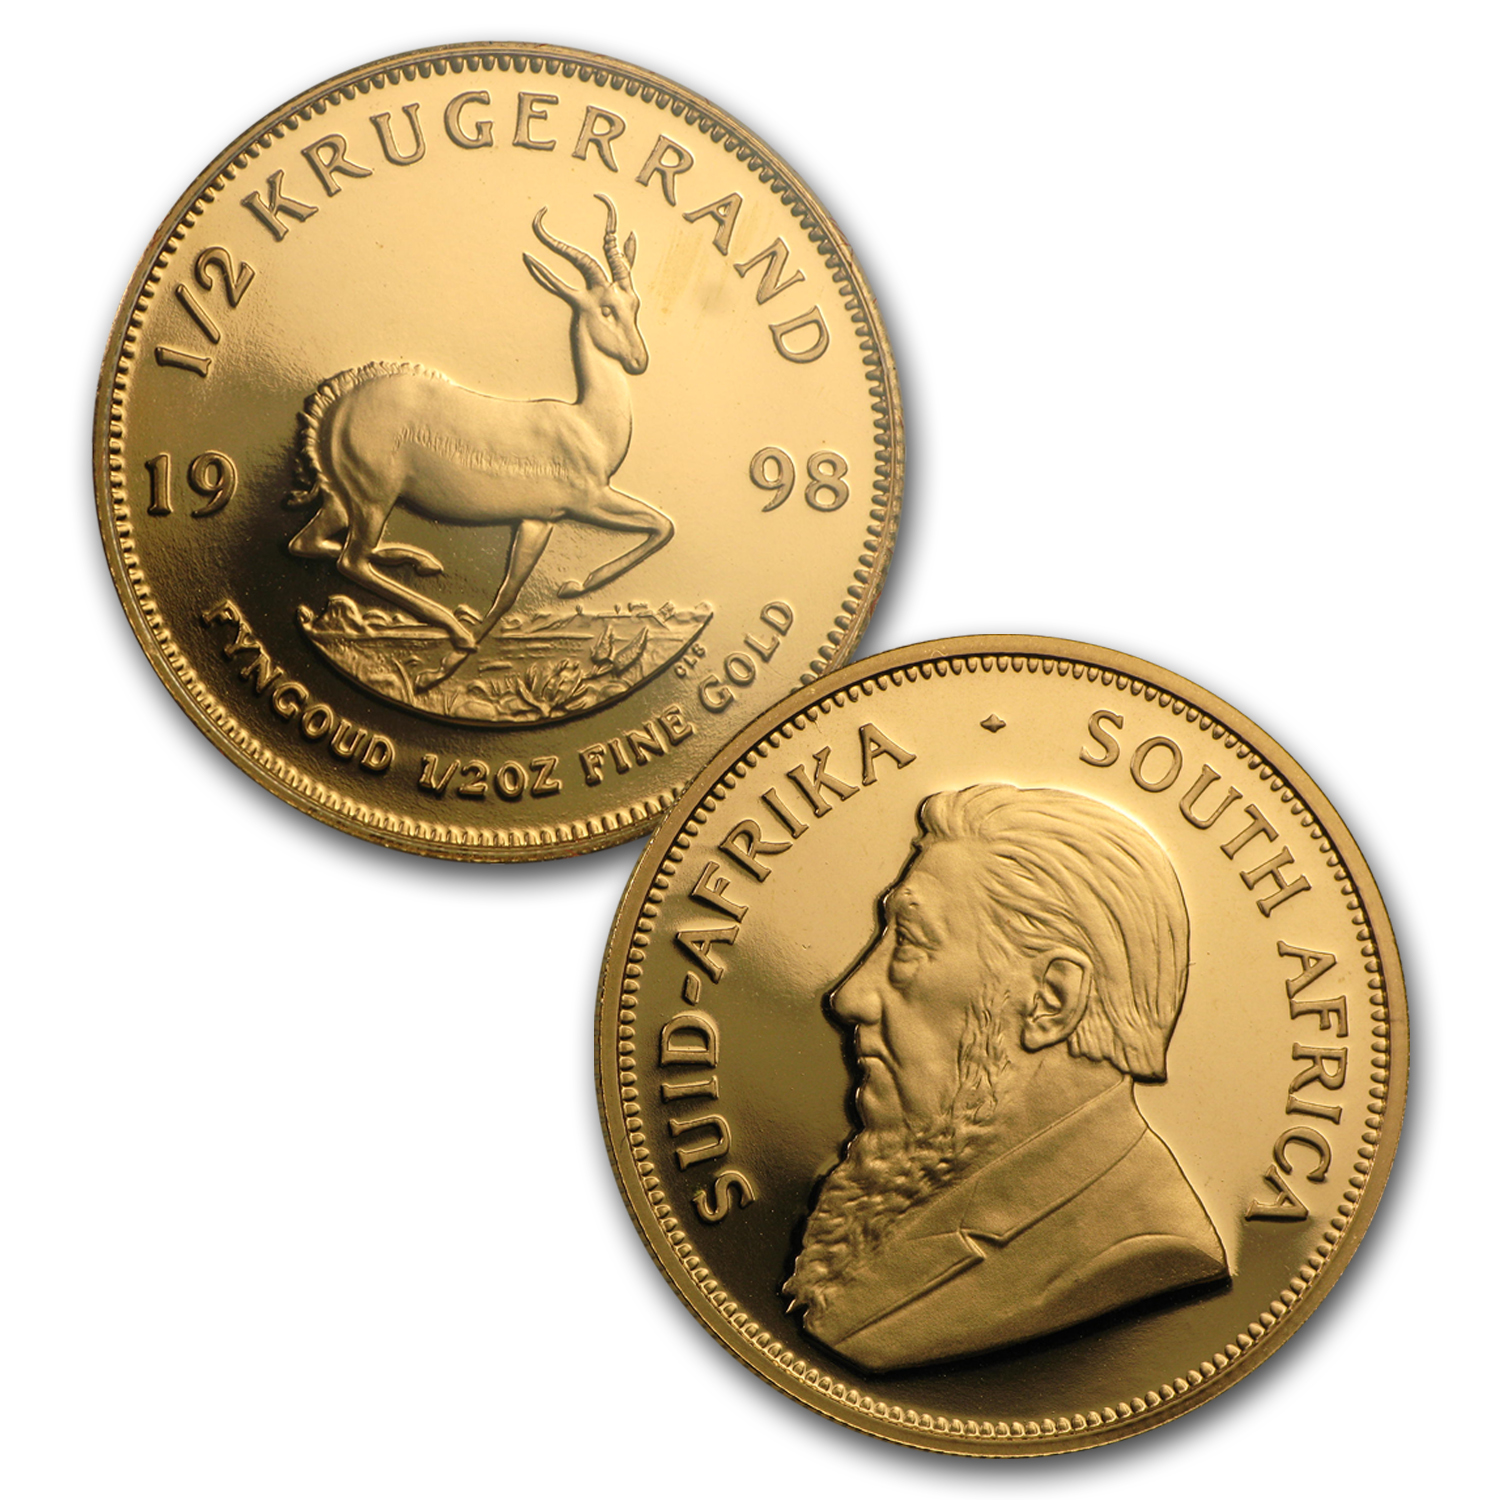 1998 South Africa 5-Pc Gold Krugerrand DeBeers Proof Set (No COA)